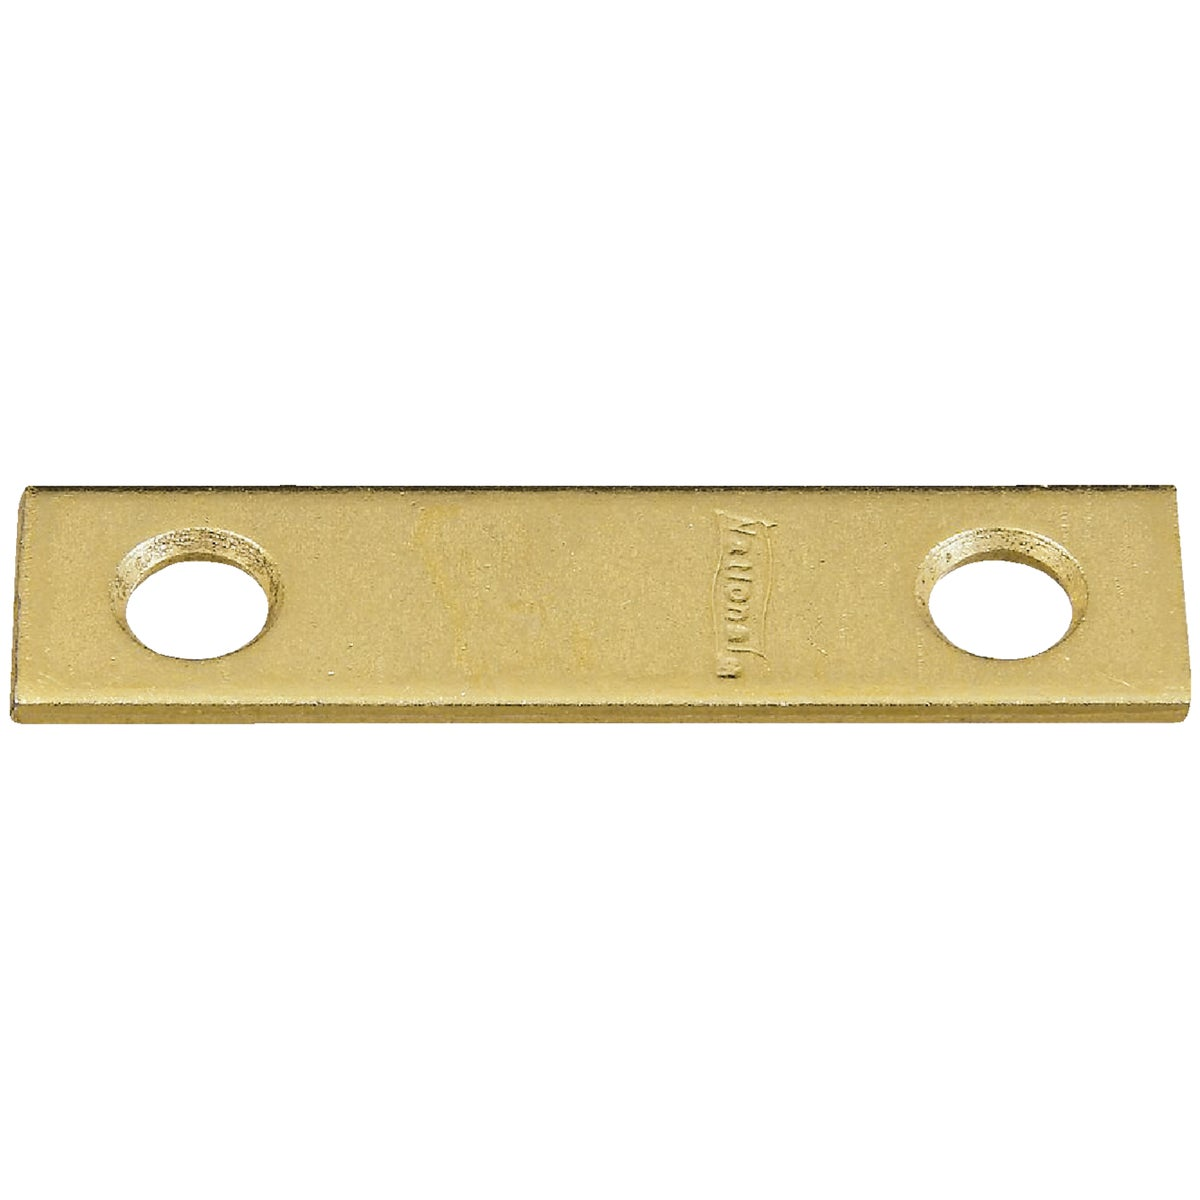 2X1/2 BB MENDING BRACE - N190892 by National Mfg Co